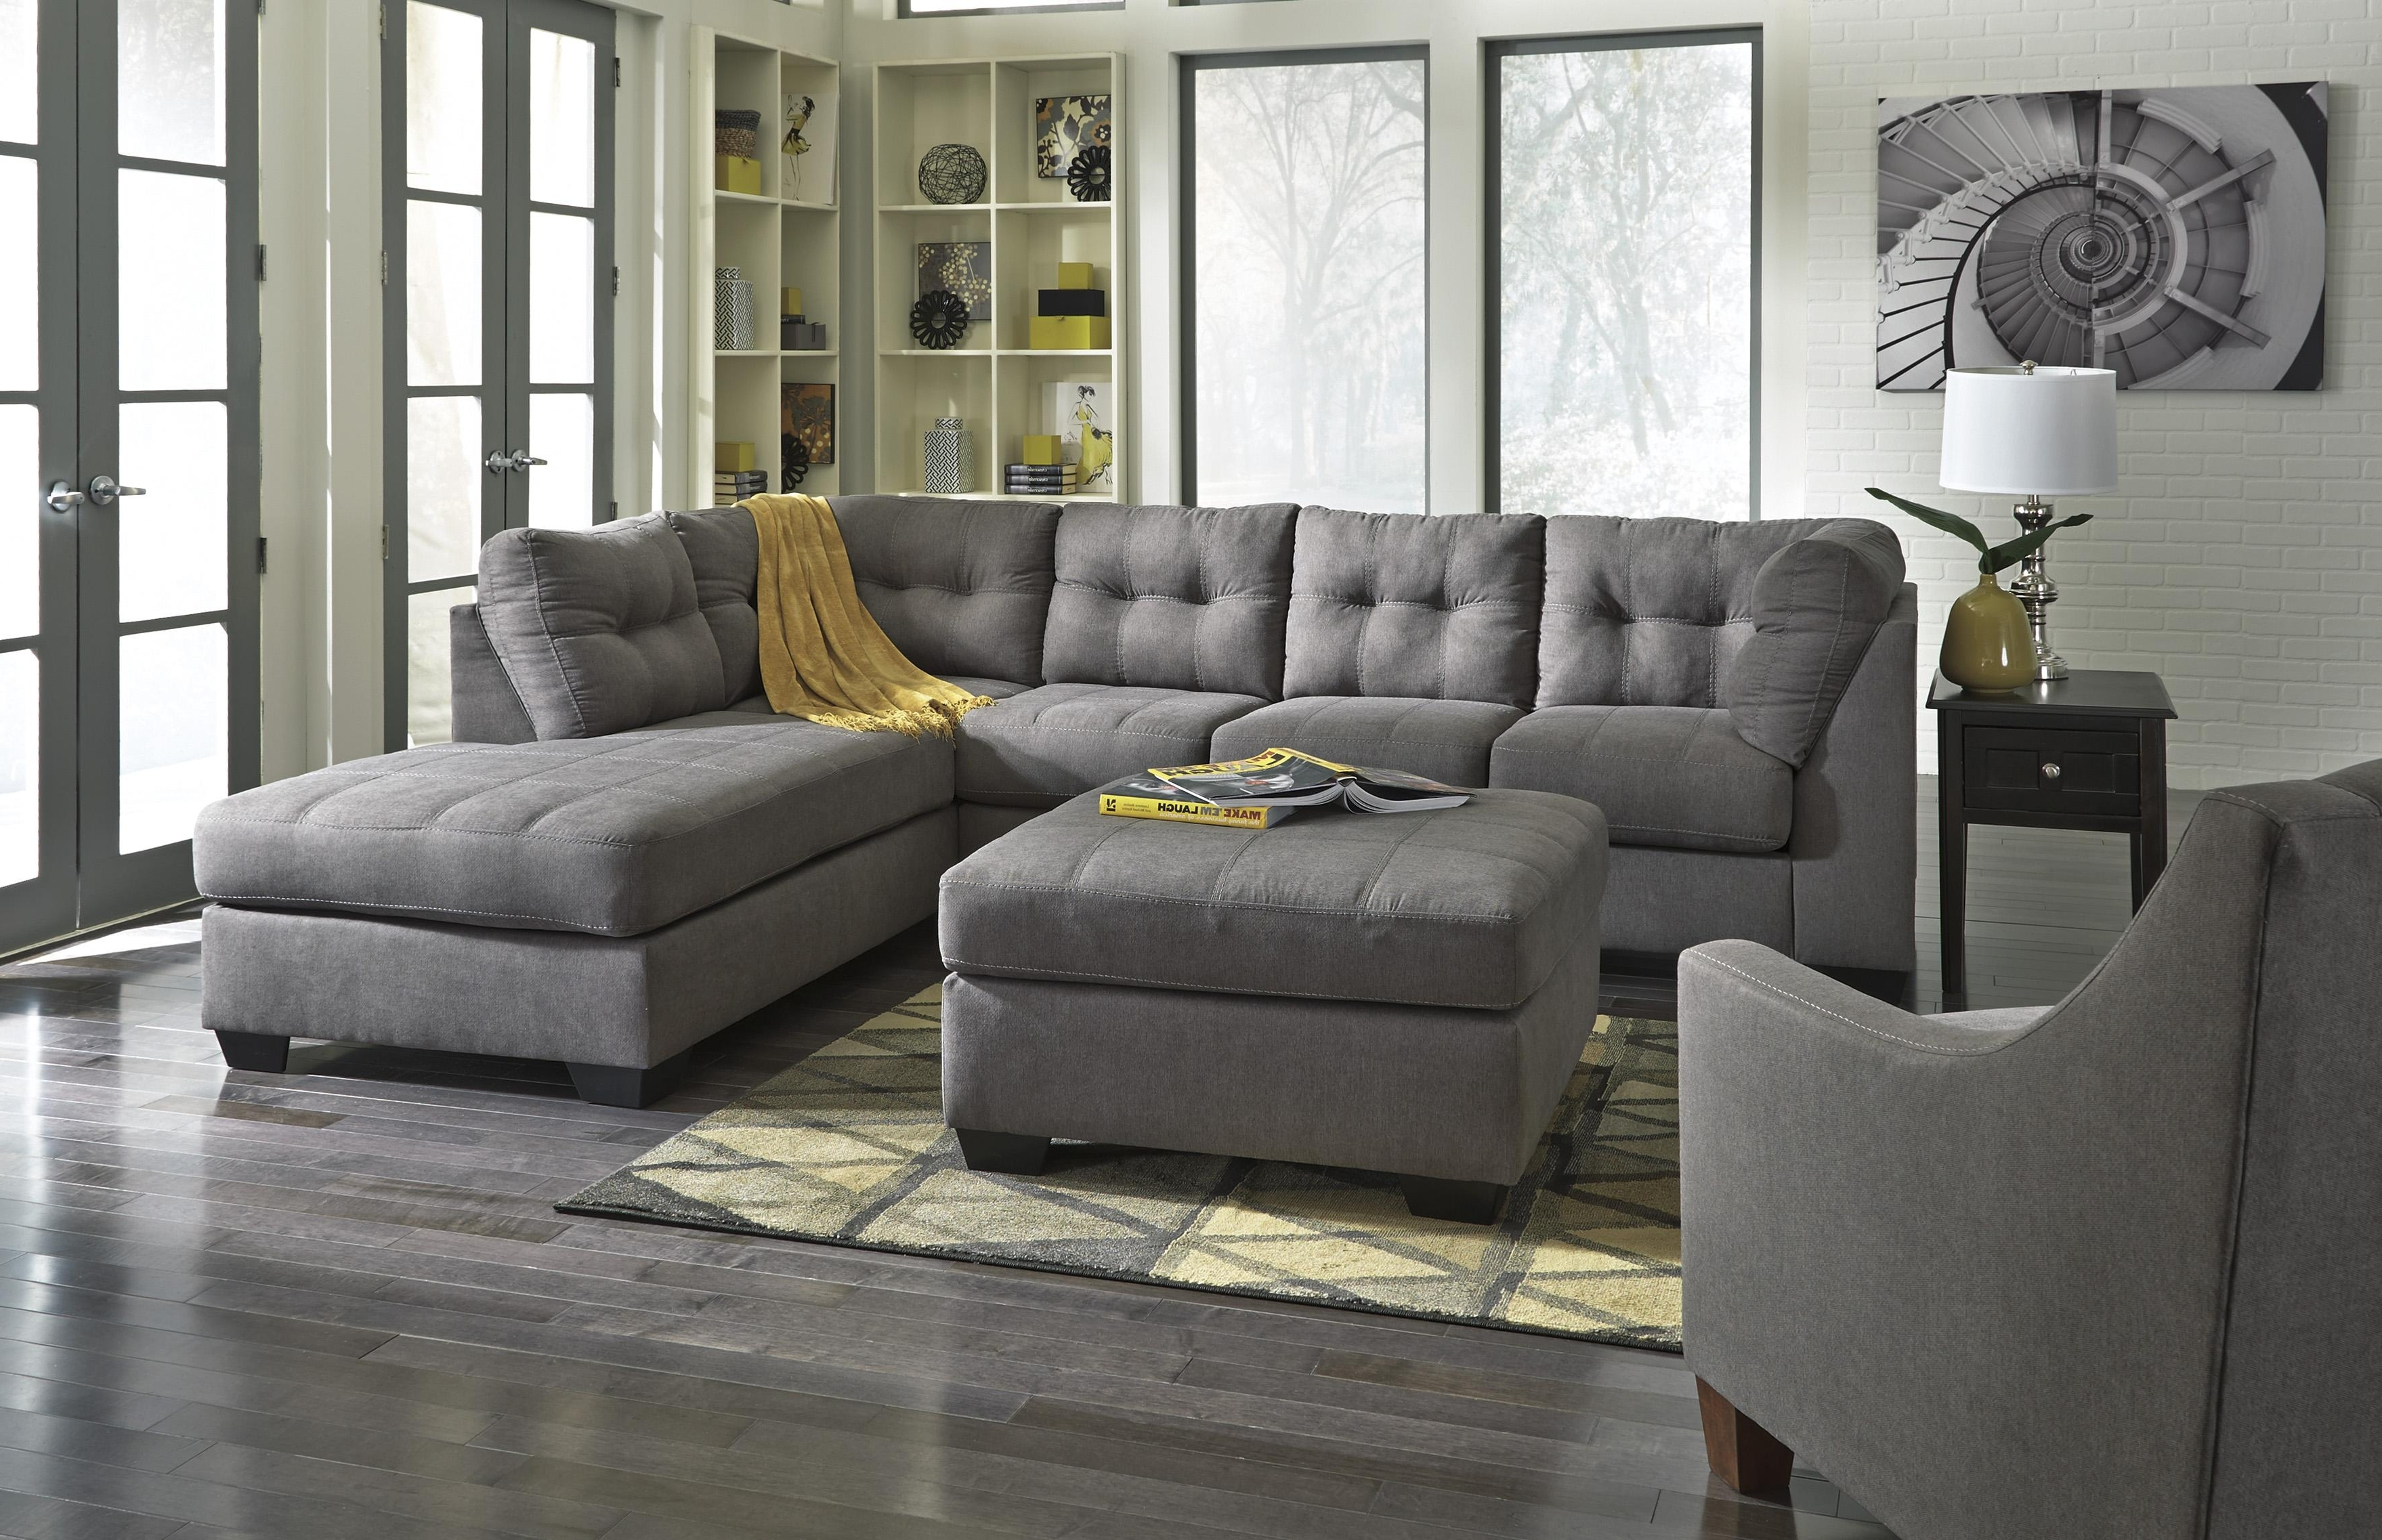 Best And Newest 2 Piece Sectional Sofas With Chaise For 2 Piece Sectional With Right Chaisebenchcraft (View 5 of 15)